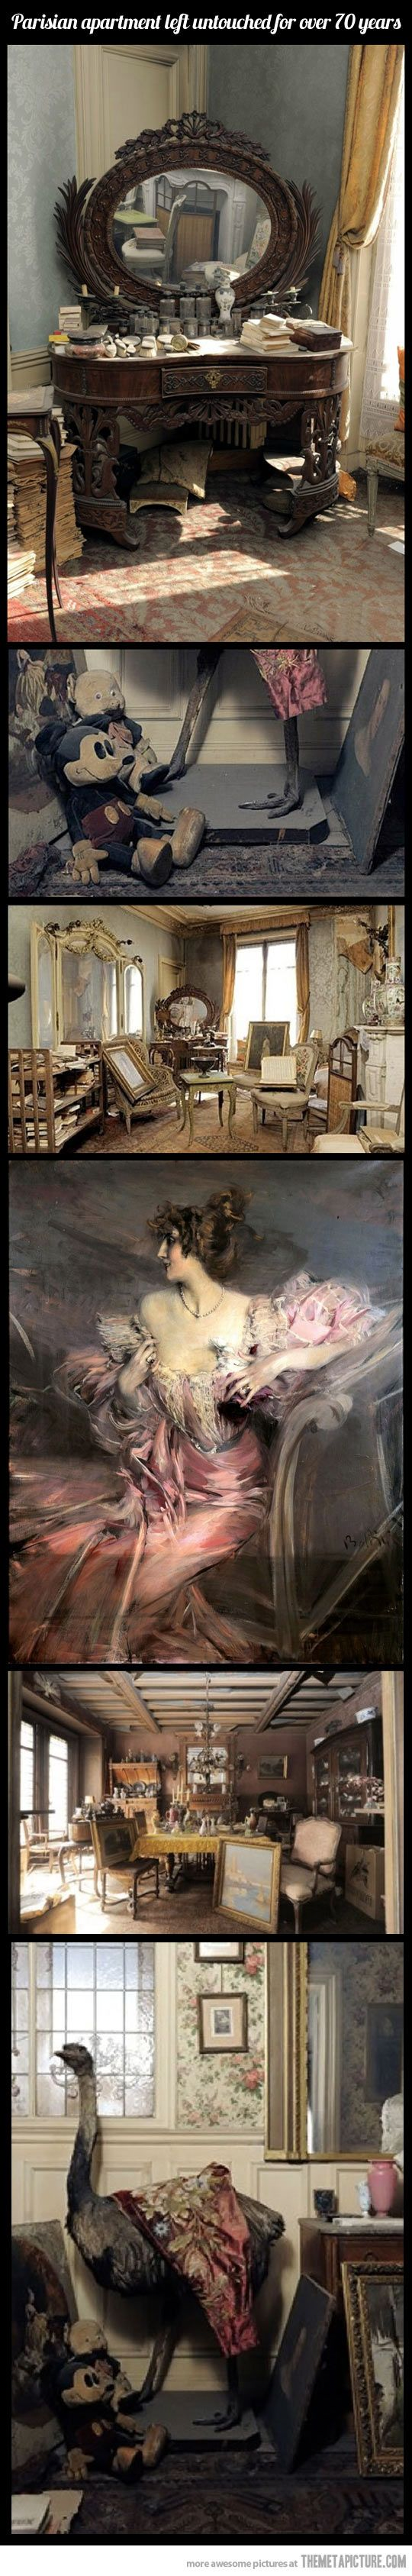 Parisian apartment untouched for 70 years, how beautiful and amazing!